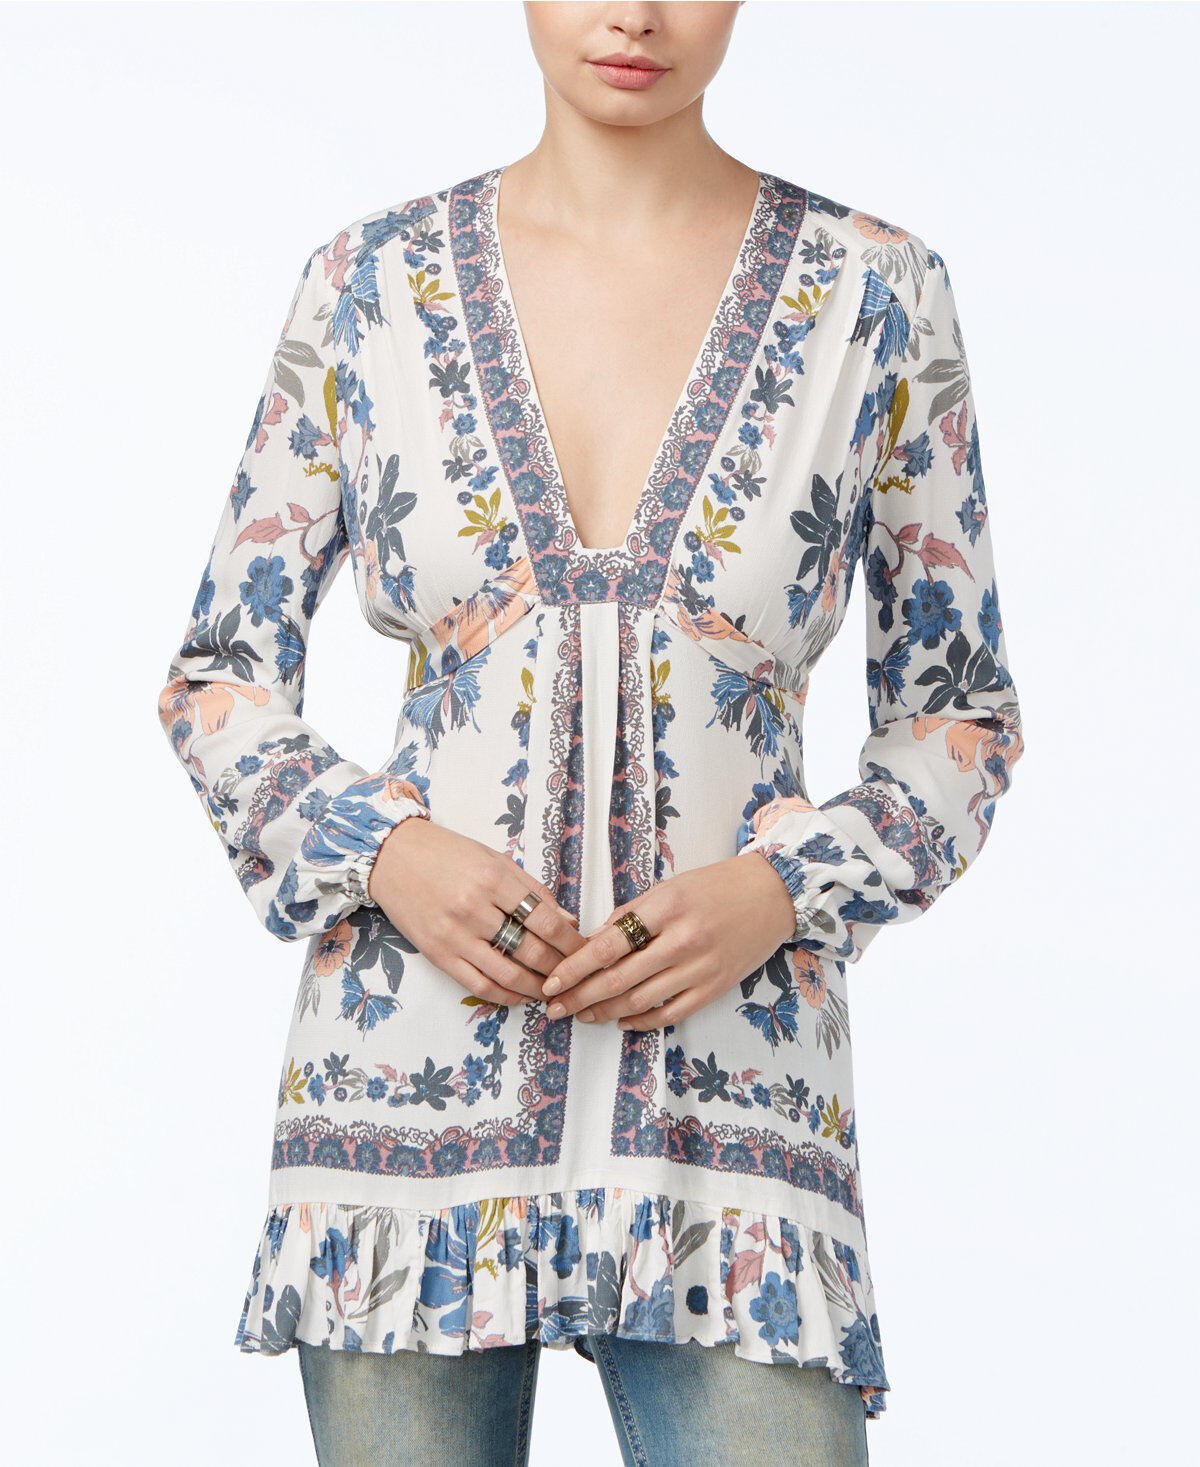 Free People Woherren New Ivory Floral lila Hill Plunging Ruffle-Detail Top Sz 6